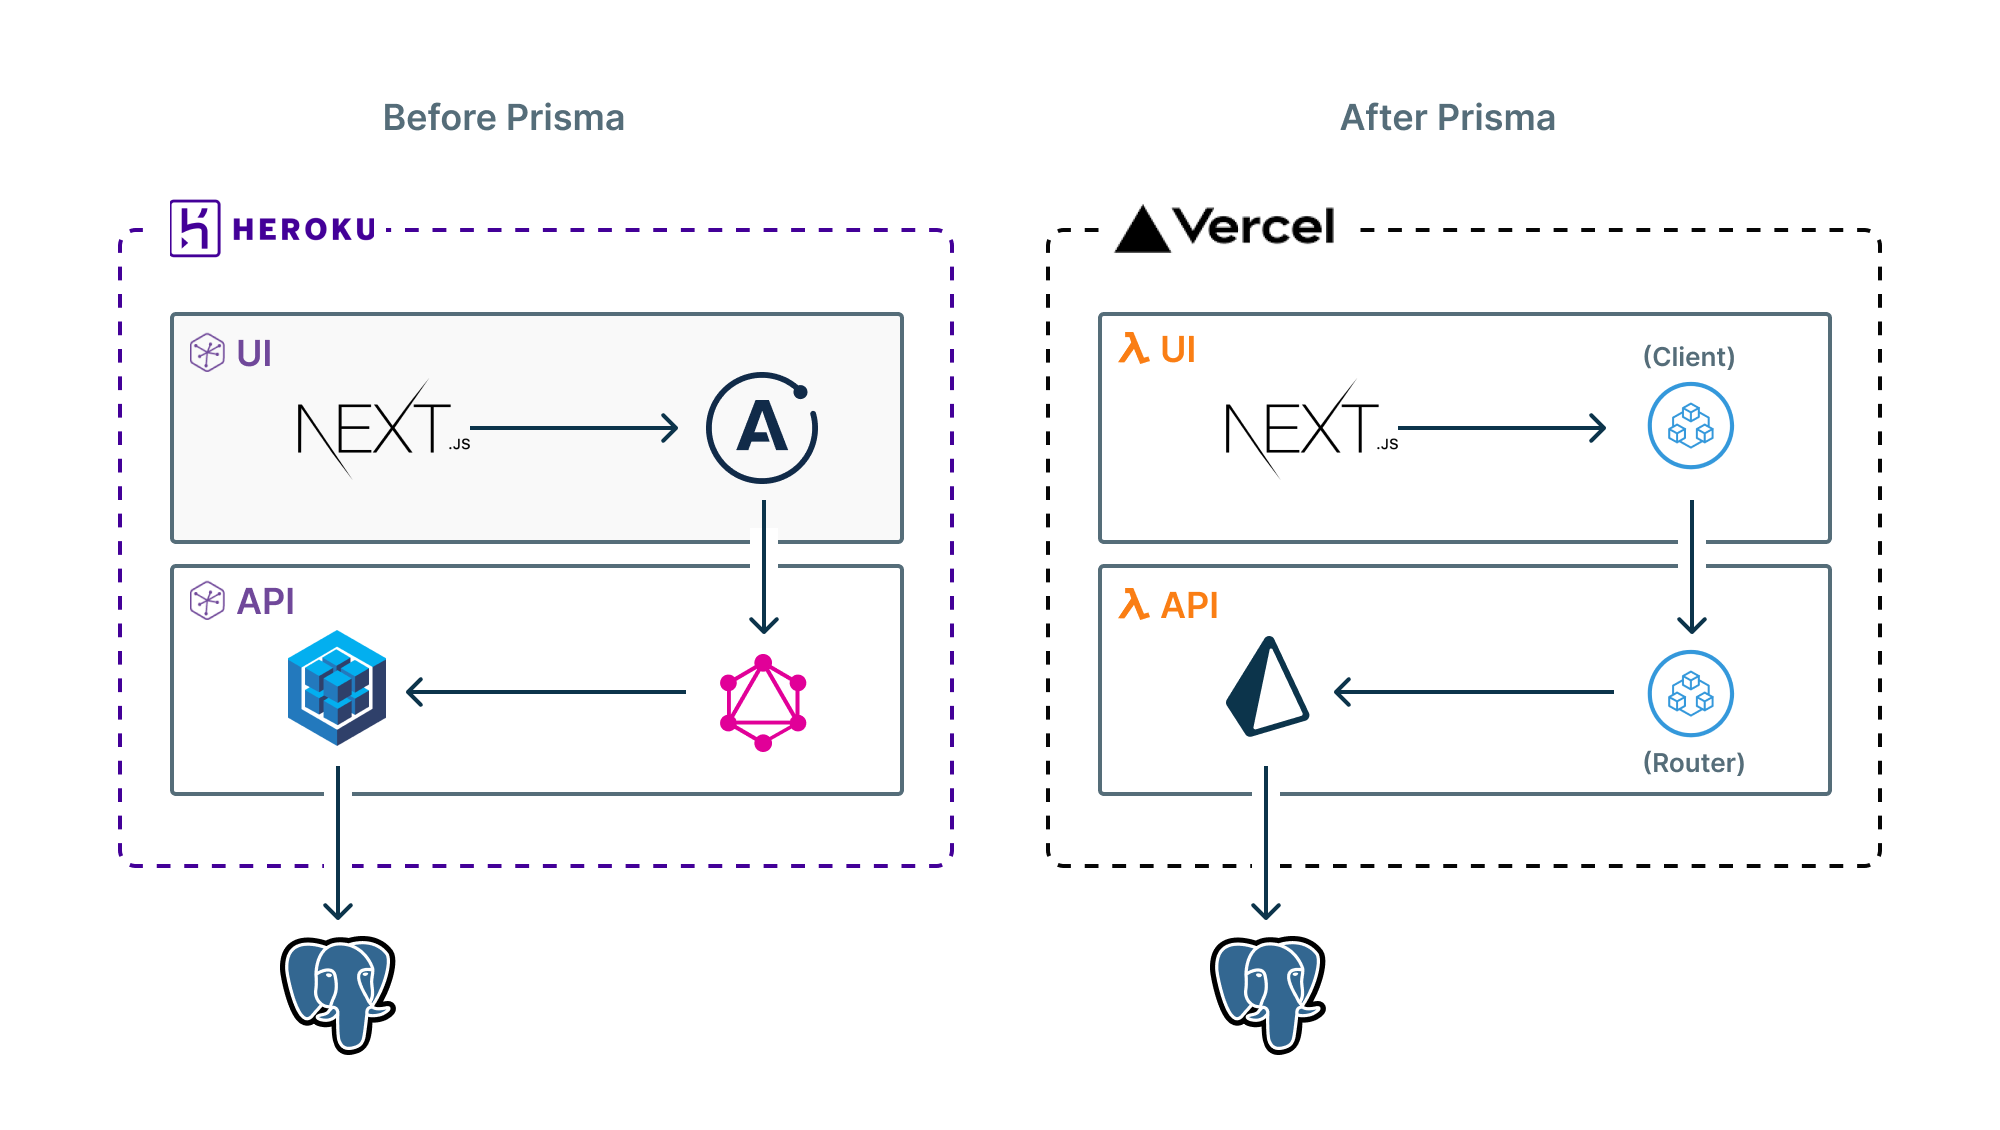 Invisible's tech stack before and after Prisma